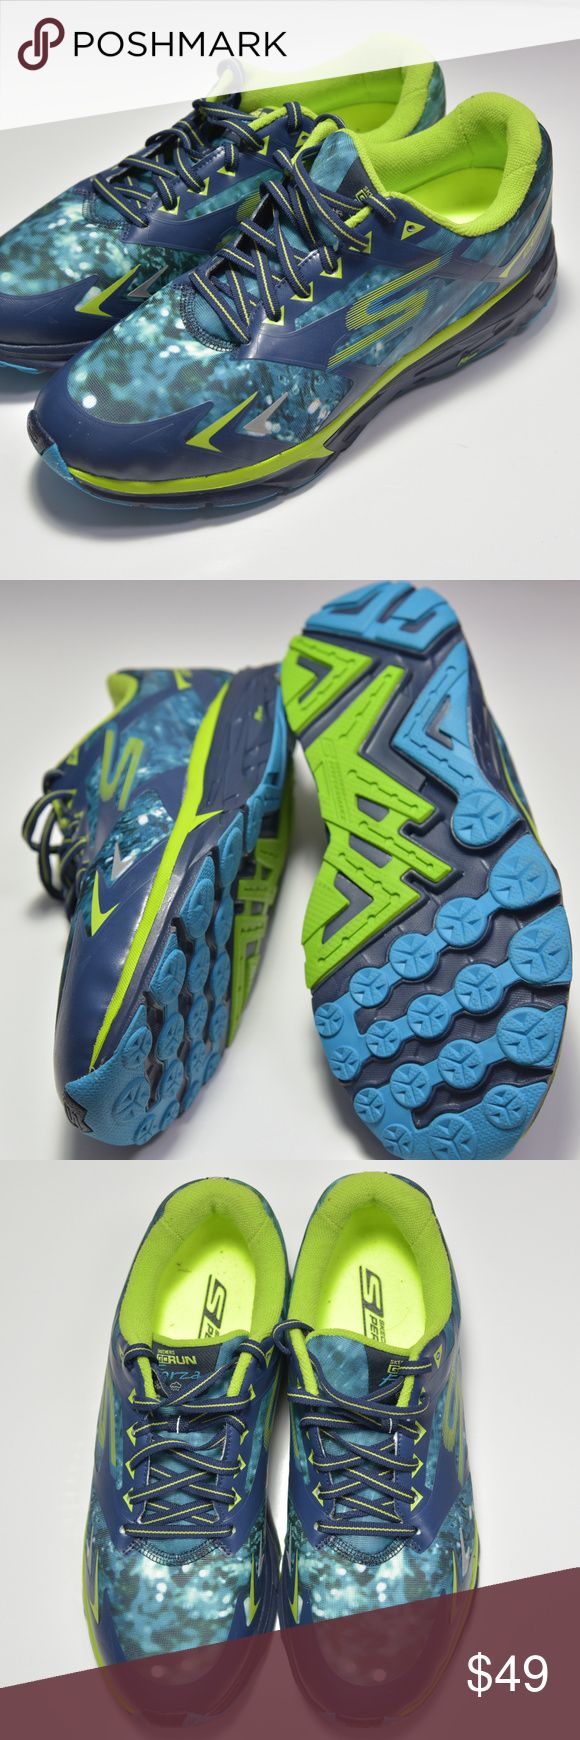 NEW! Sketchers Go Run Forza Climate Series US 10.5 Brand new pair of men's Skechers Go Run Forza running shoes. Men's US size 10.5. Navy and lime. Seamless, minimal upper, provides comfort and breathability. See photo for details. **Please be sure of size before purchase. No return shipping paid because of size error. New without box!** Skechers Shoes Athletic Shoes